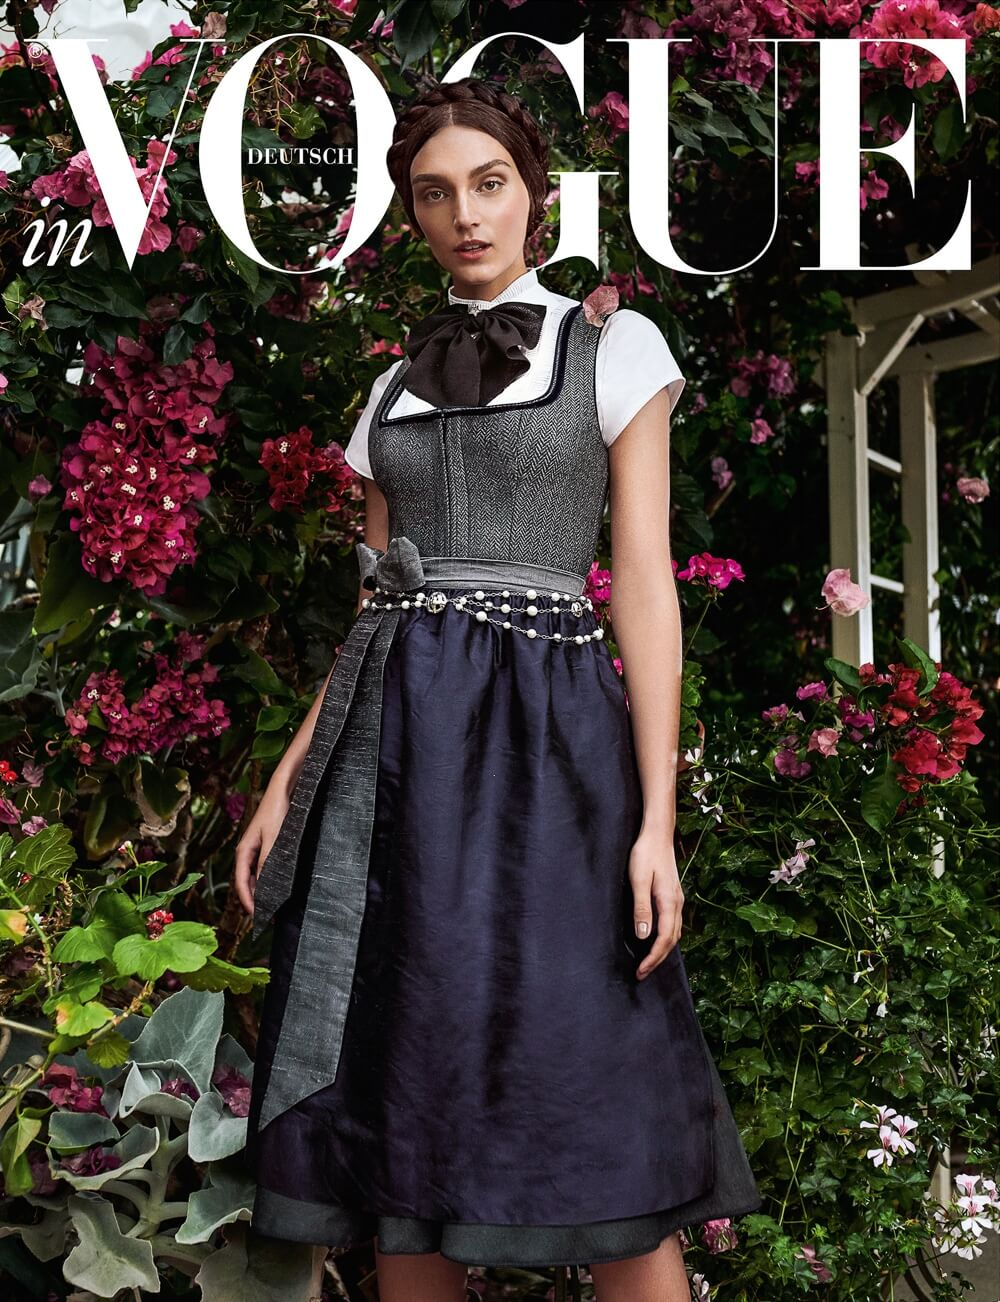 Vogue-Germany-August-2018-Deimante-Misiunaite-Andreas-Ortner-3